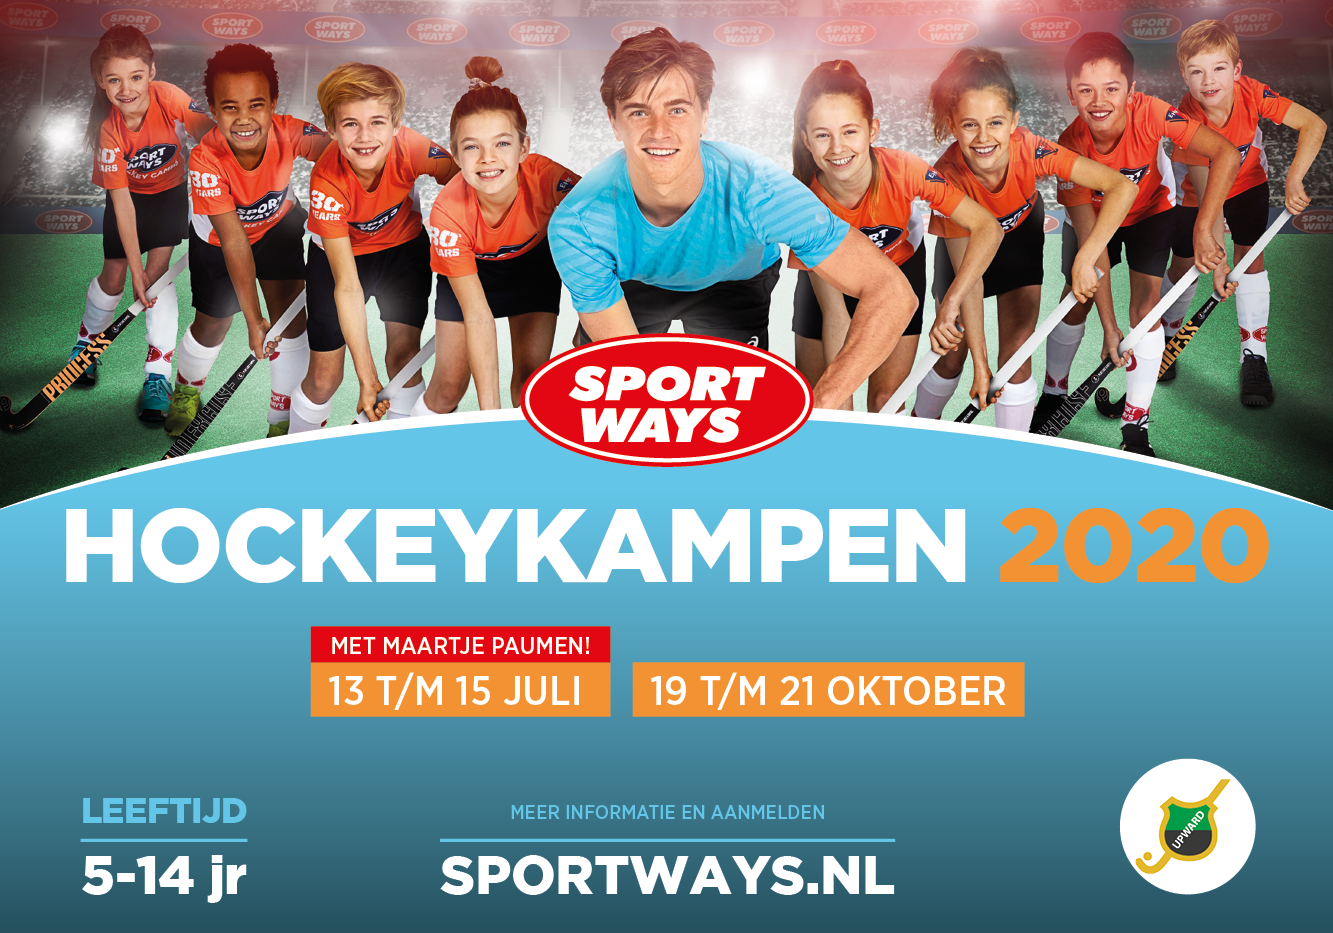 SportWays hockeykampen in 2020 op Upward